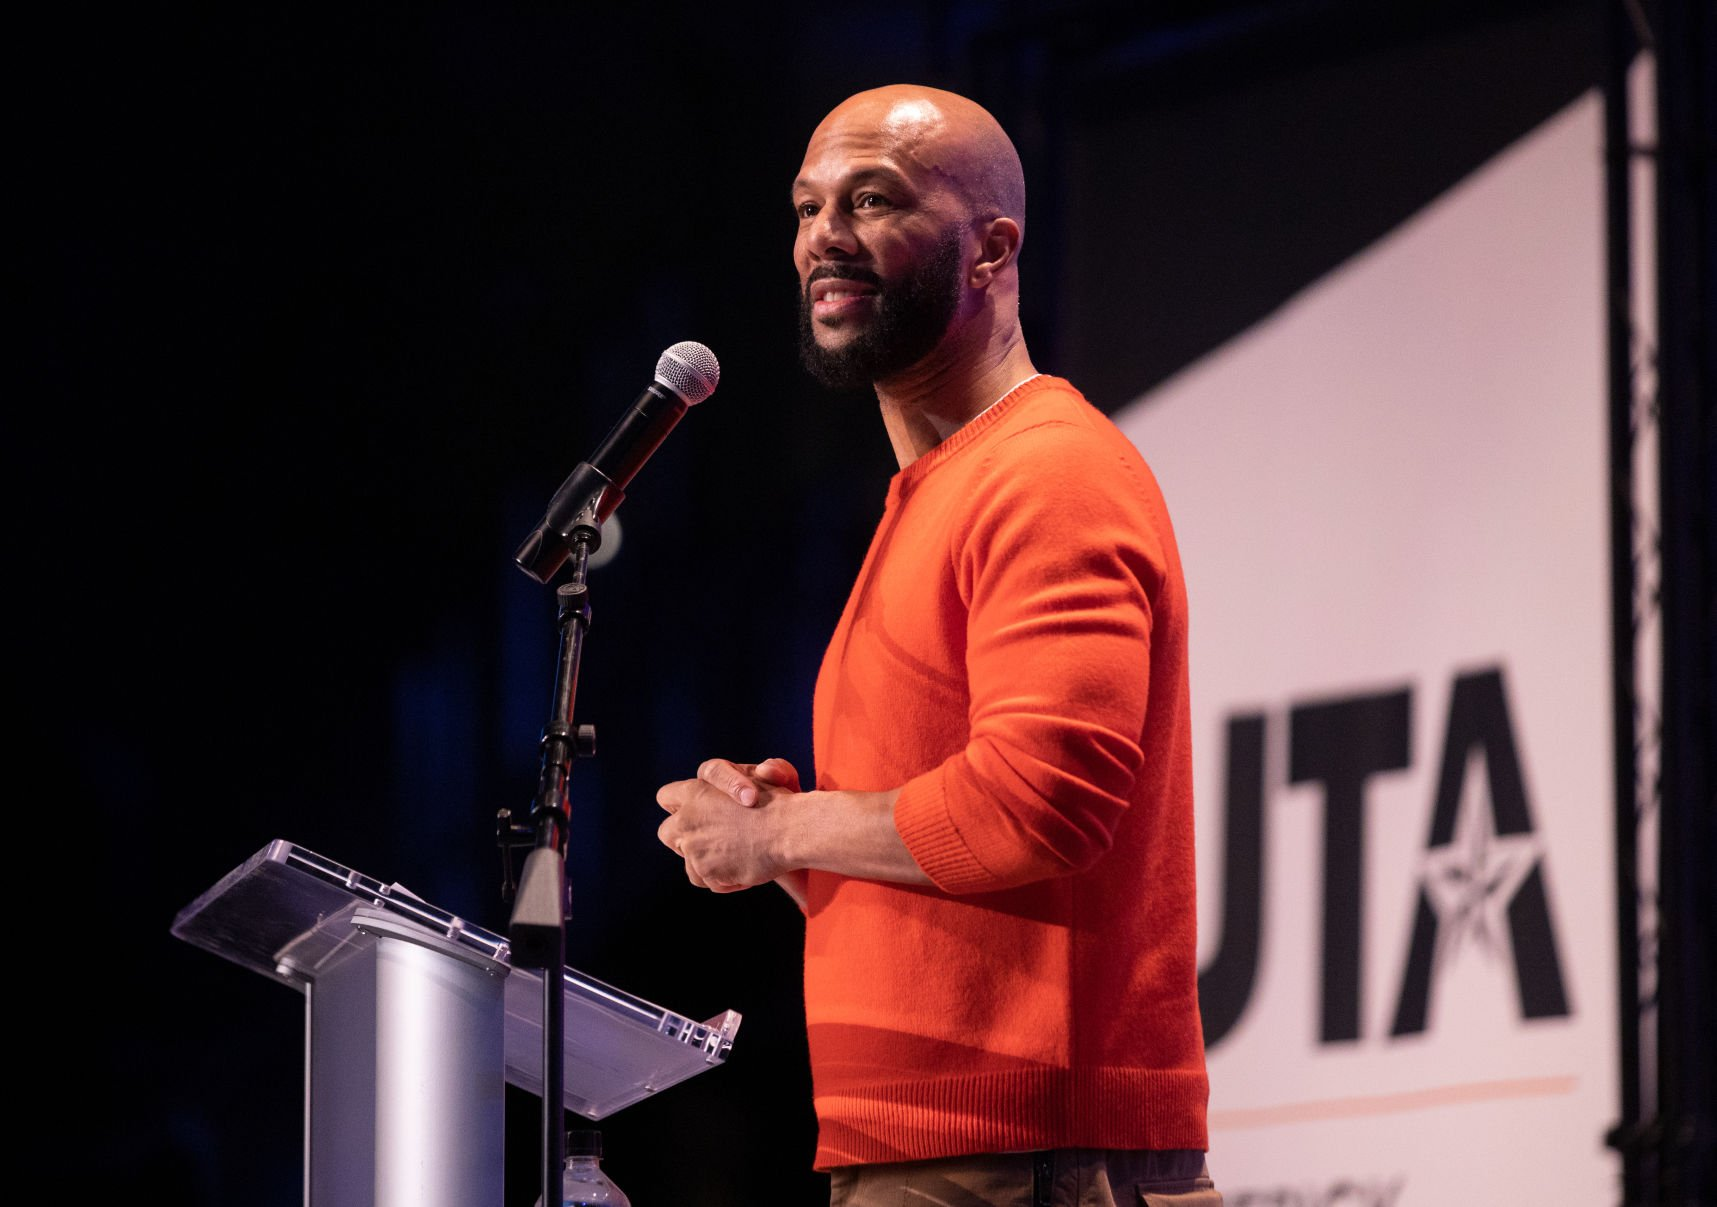 Artist and activist Common speaks on personal truth, mindfulness during the Maverick Speakers Series